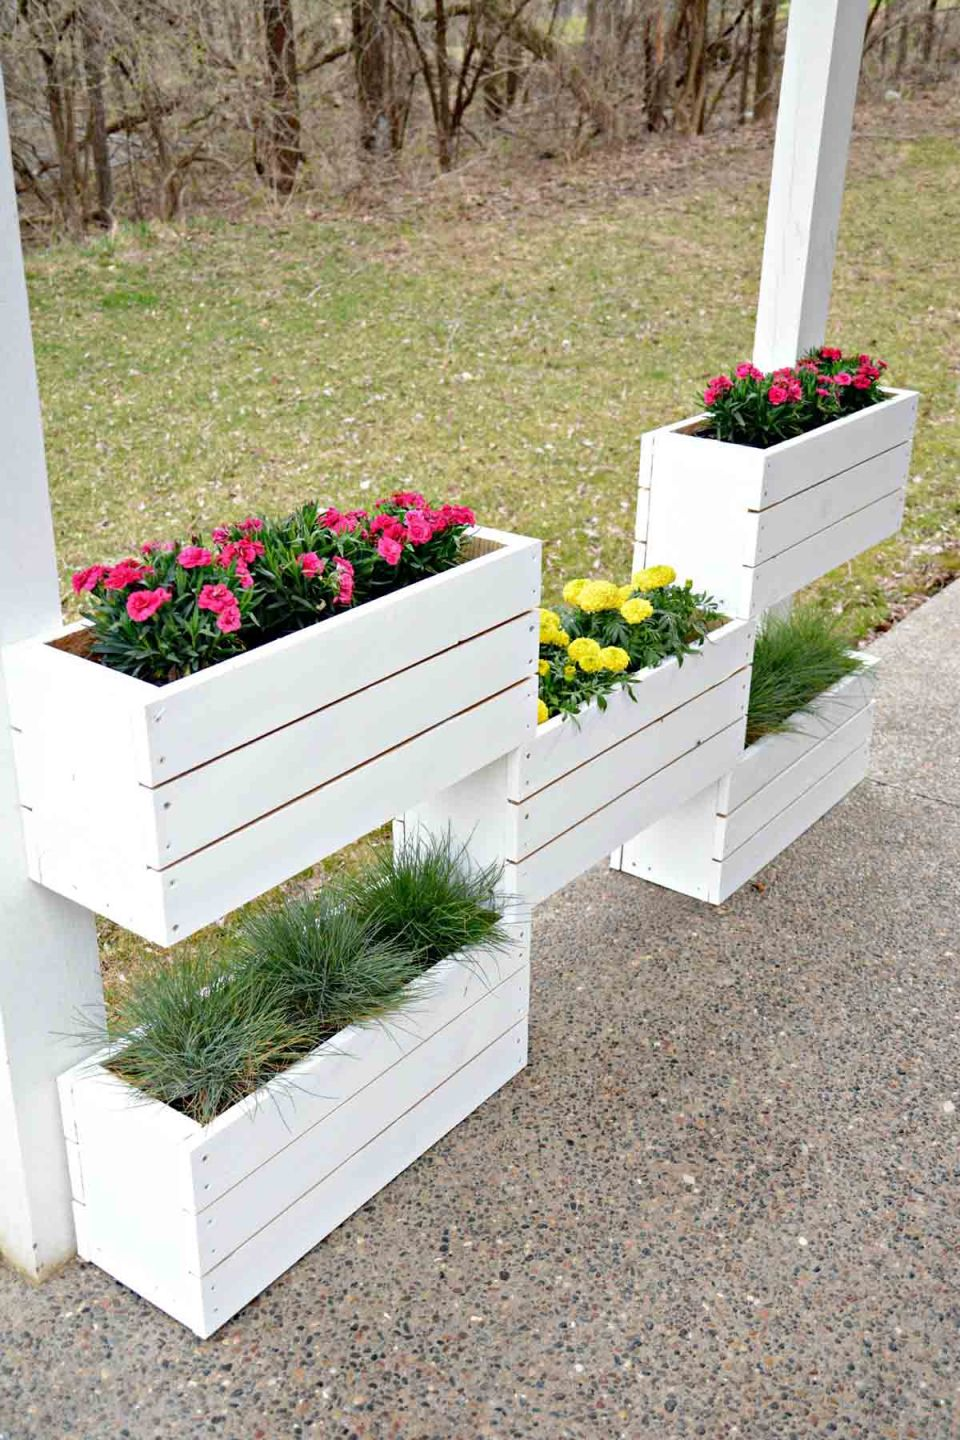 Tiered Wooden Crate Built-In Planter Boxes